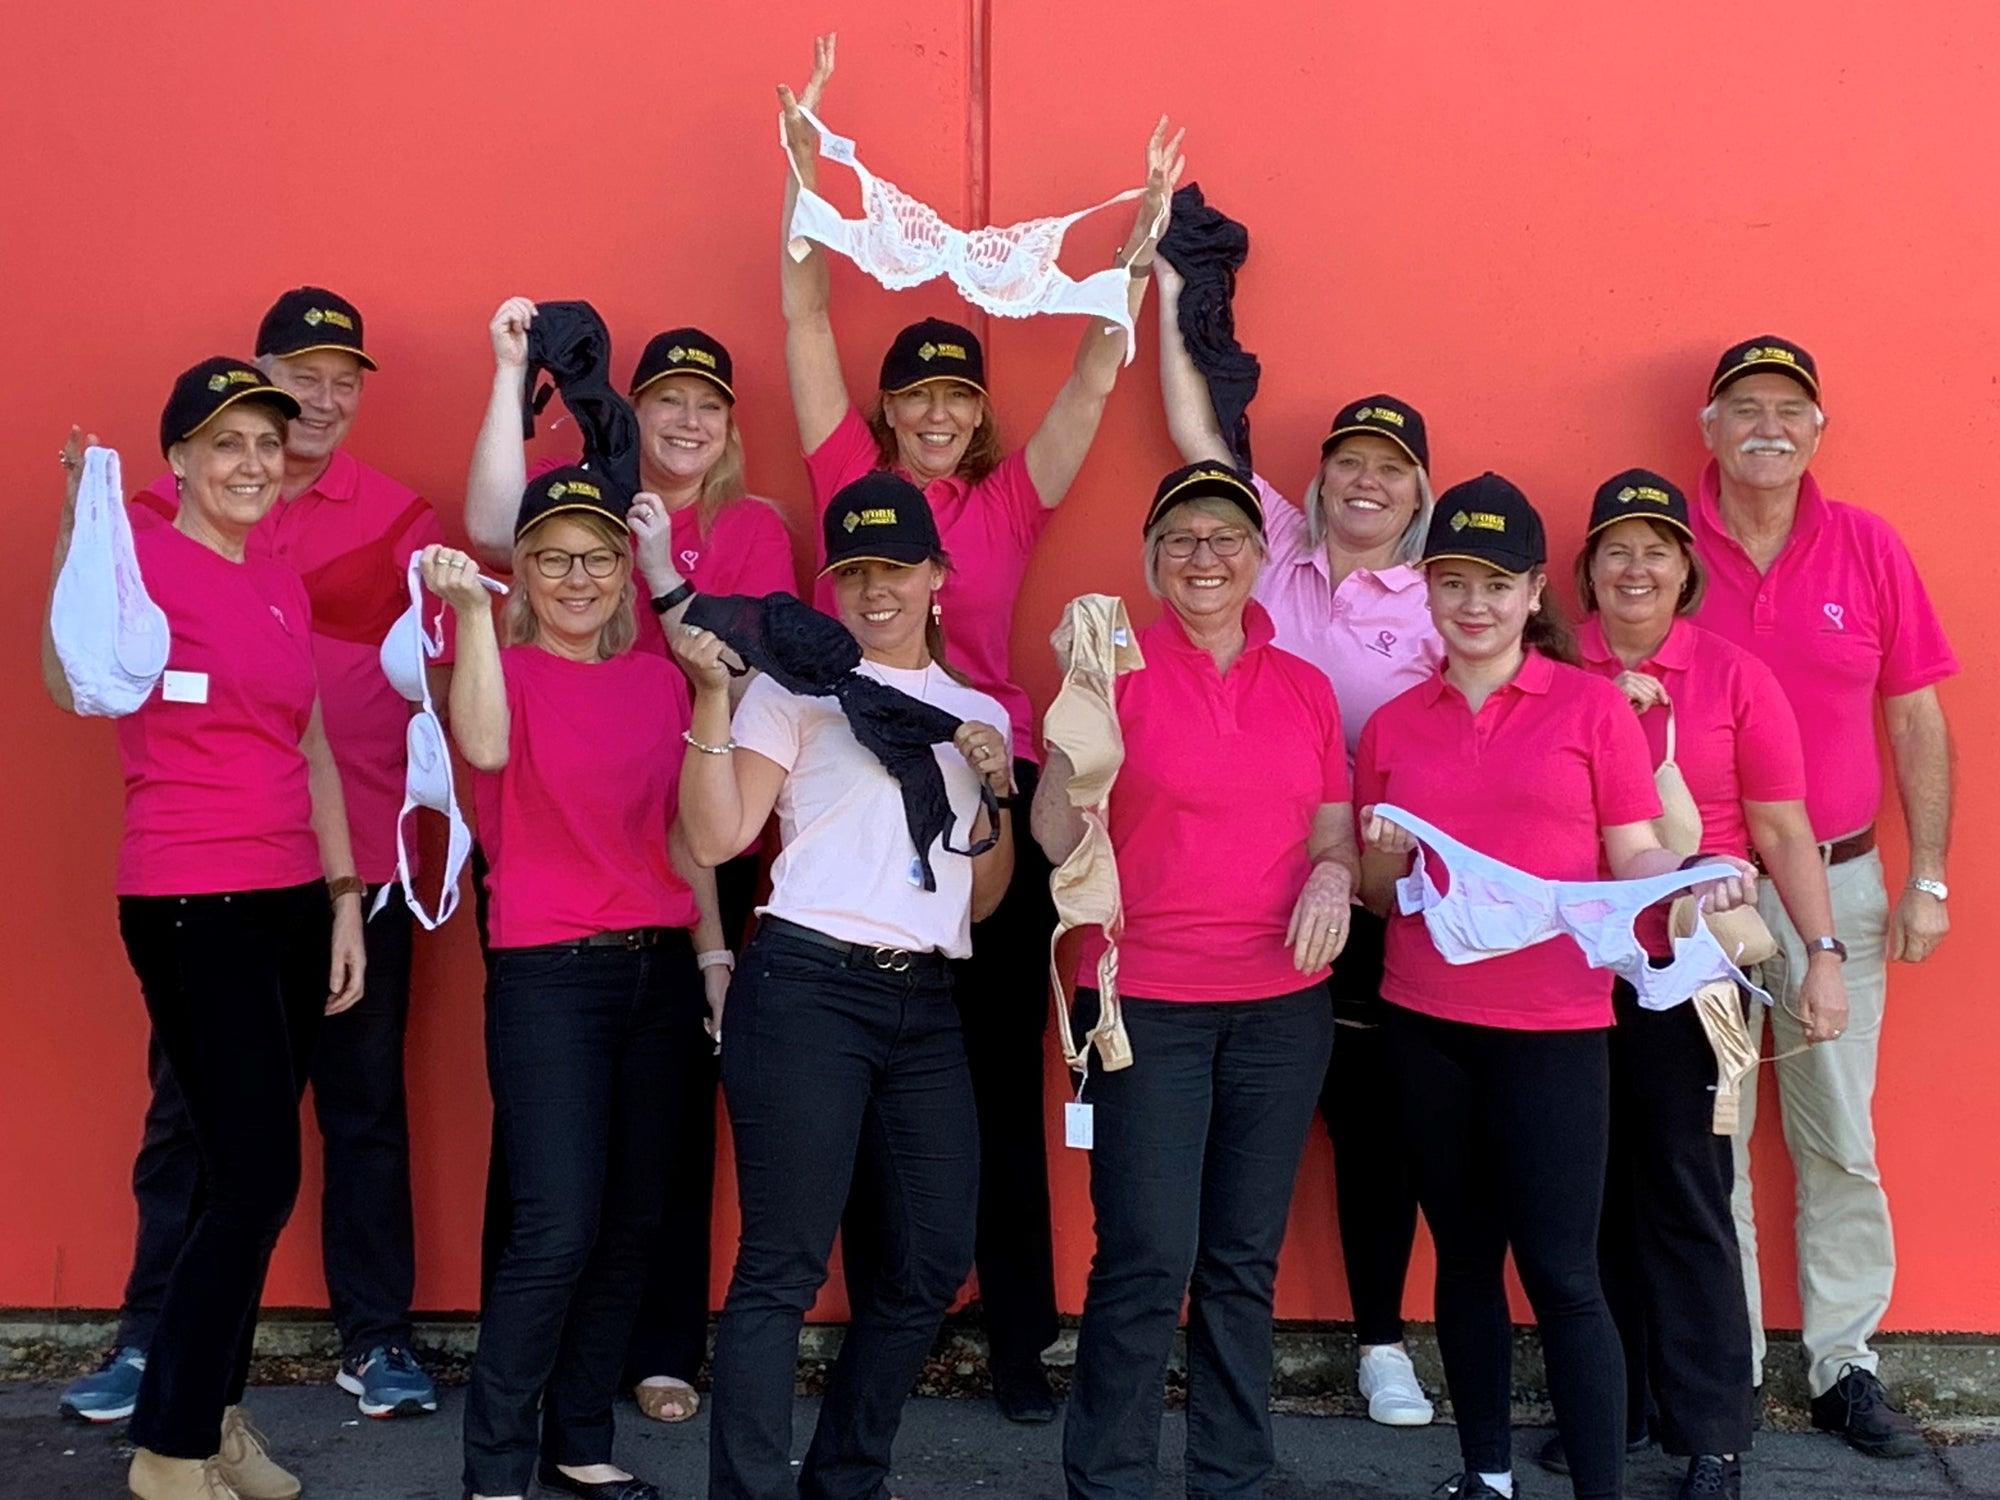 Work Clobber Bunbury going Pink for Breast Cancer Awareness Month